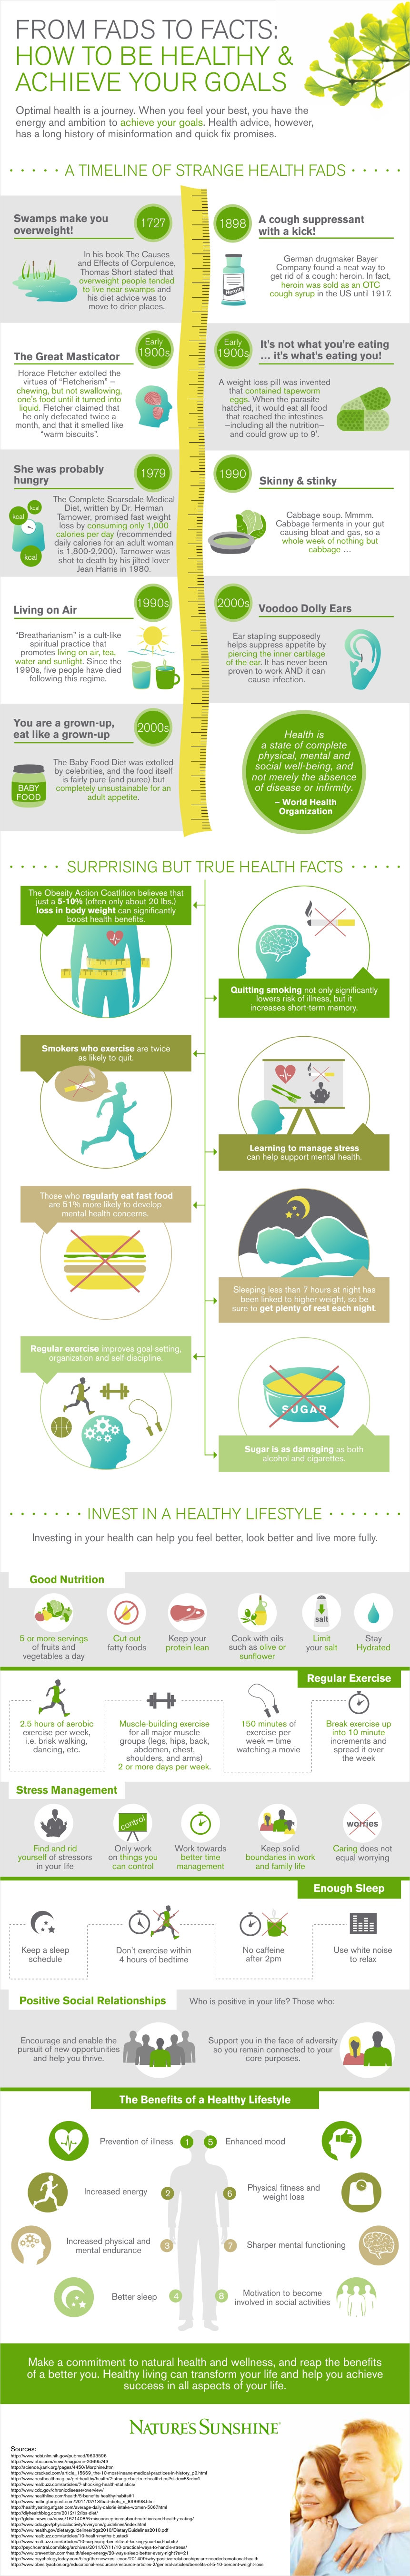 How to be Healthy and Achieve Your Goals infographic